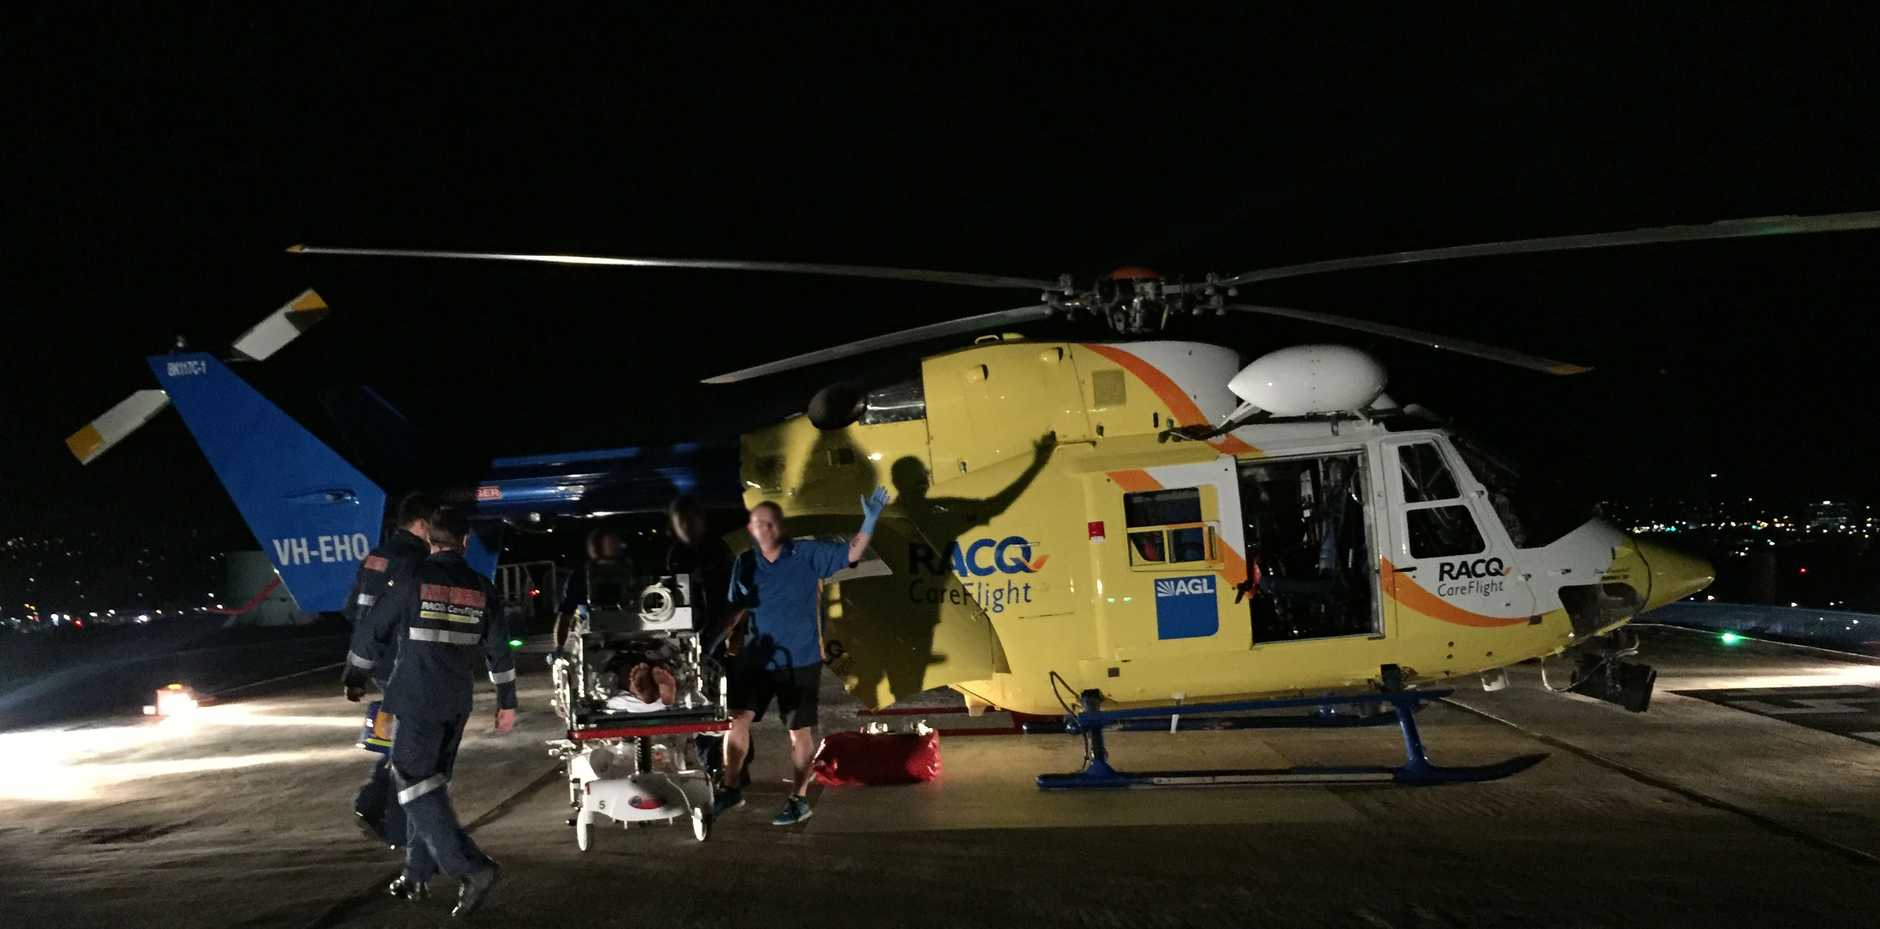 The Sunshine Coast CareFlight crew airlifted the 17-year-old to hospital